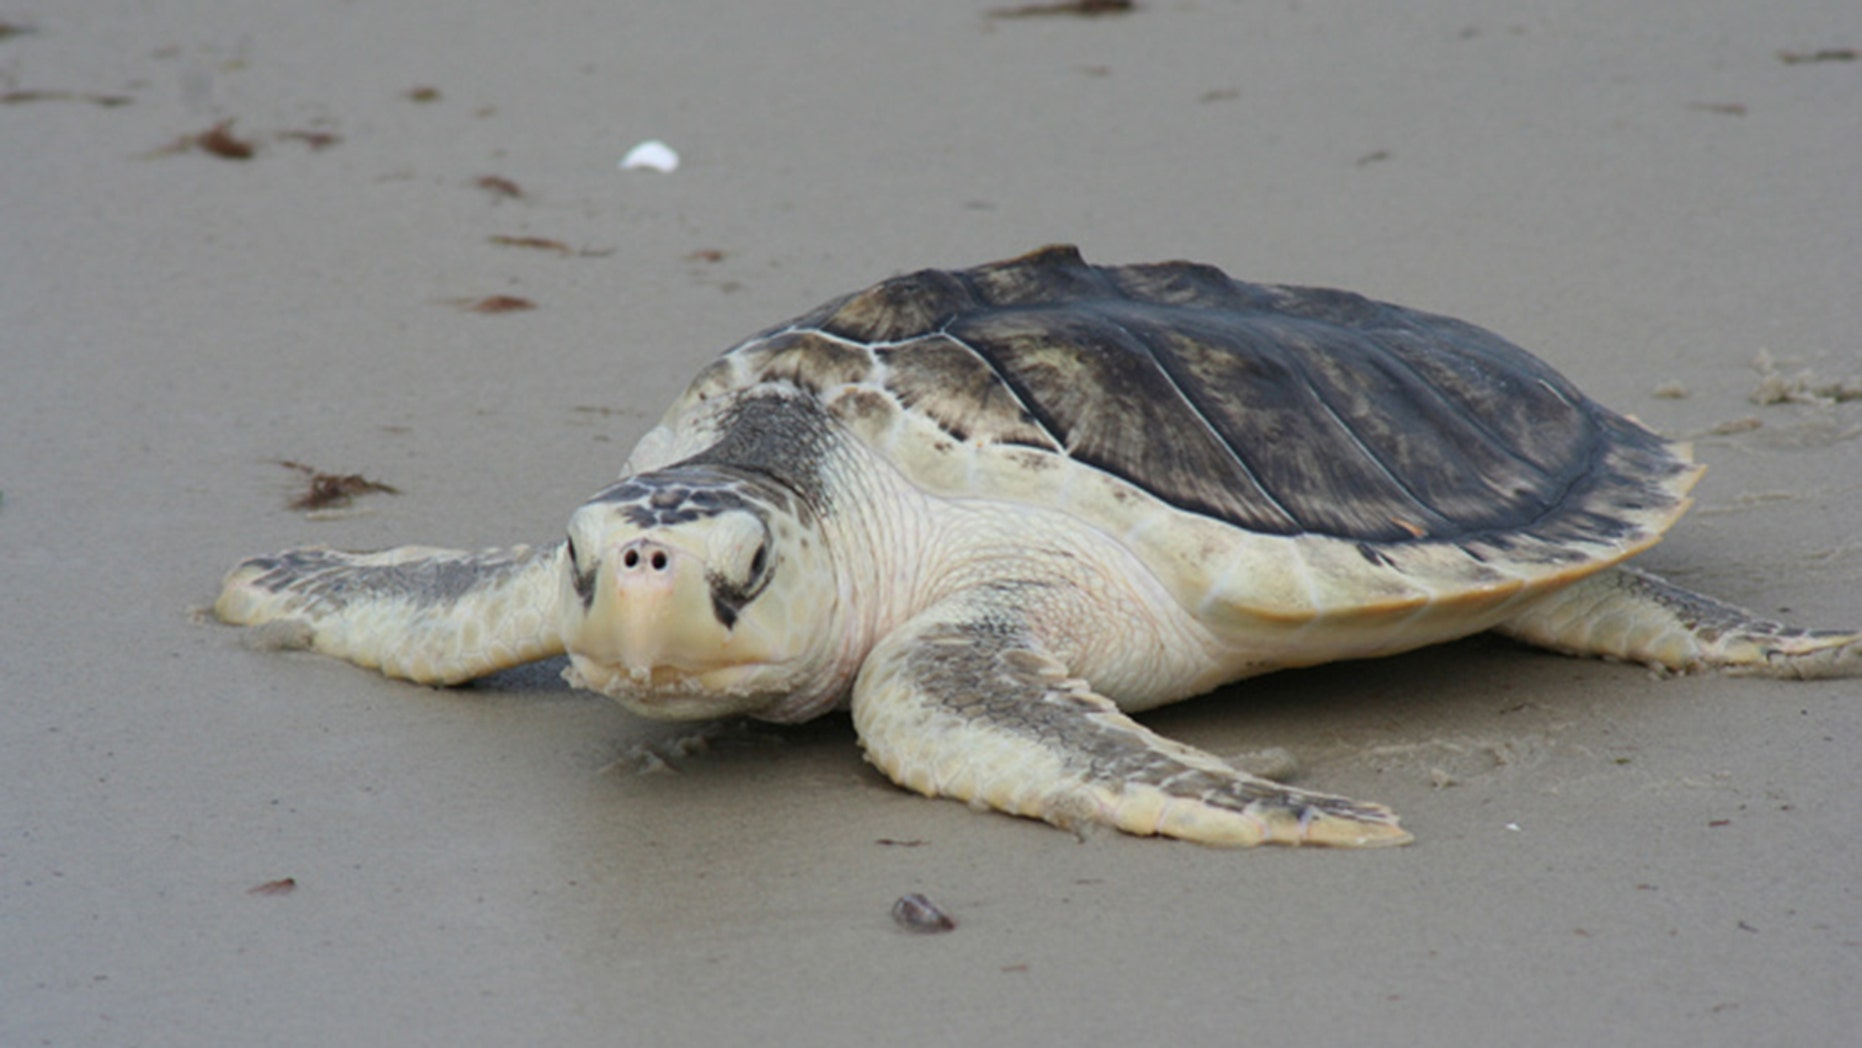 At least 19 Kemp's Ridley sea turtles -- the most endangered of the species -- have been found on the southwest Florida beaches.